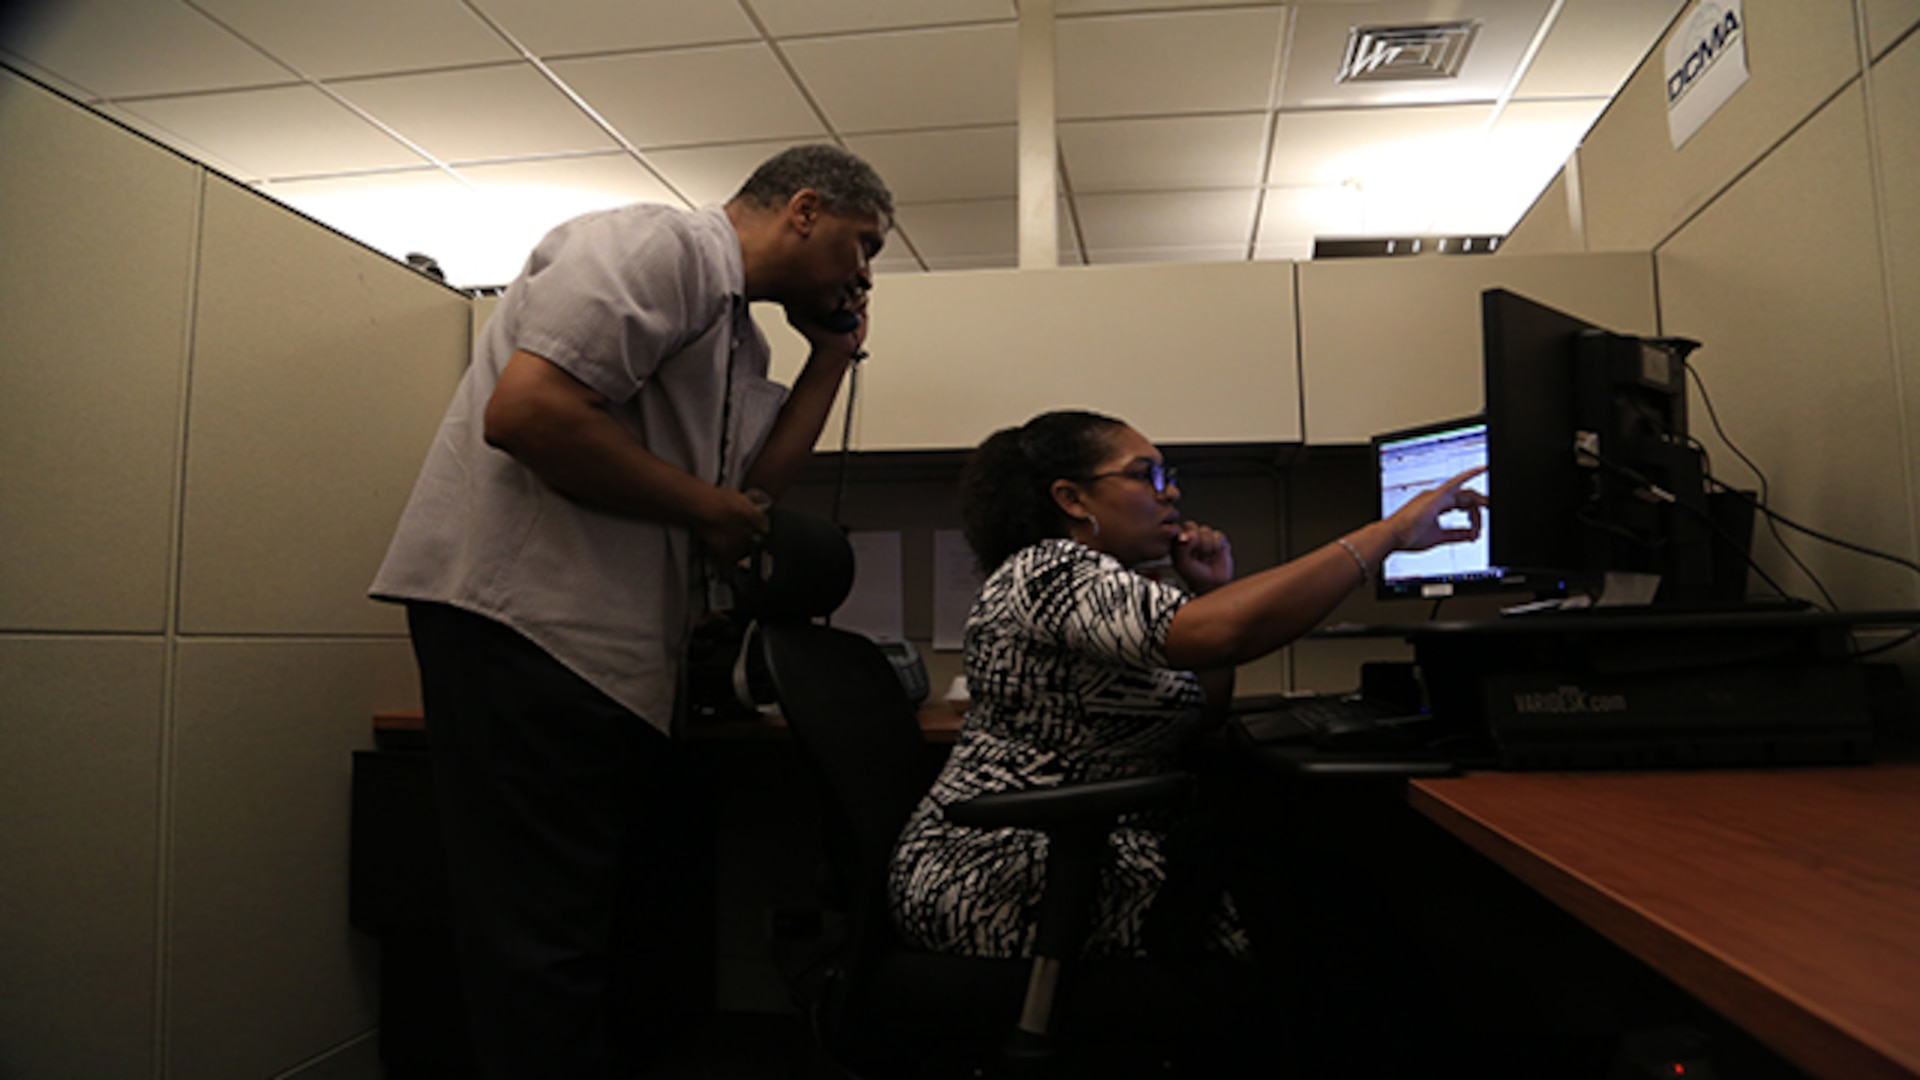 Defense Contract Management Agency video teleconferencing professionals, Terence Arrington and April Schulter, manage multipoint conferences during the global all hands from Fort Lee, Virginia, July 26, 2017. (DCMA photo by Elizabeth Szoke)